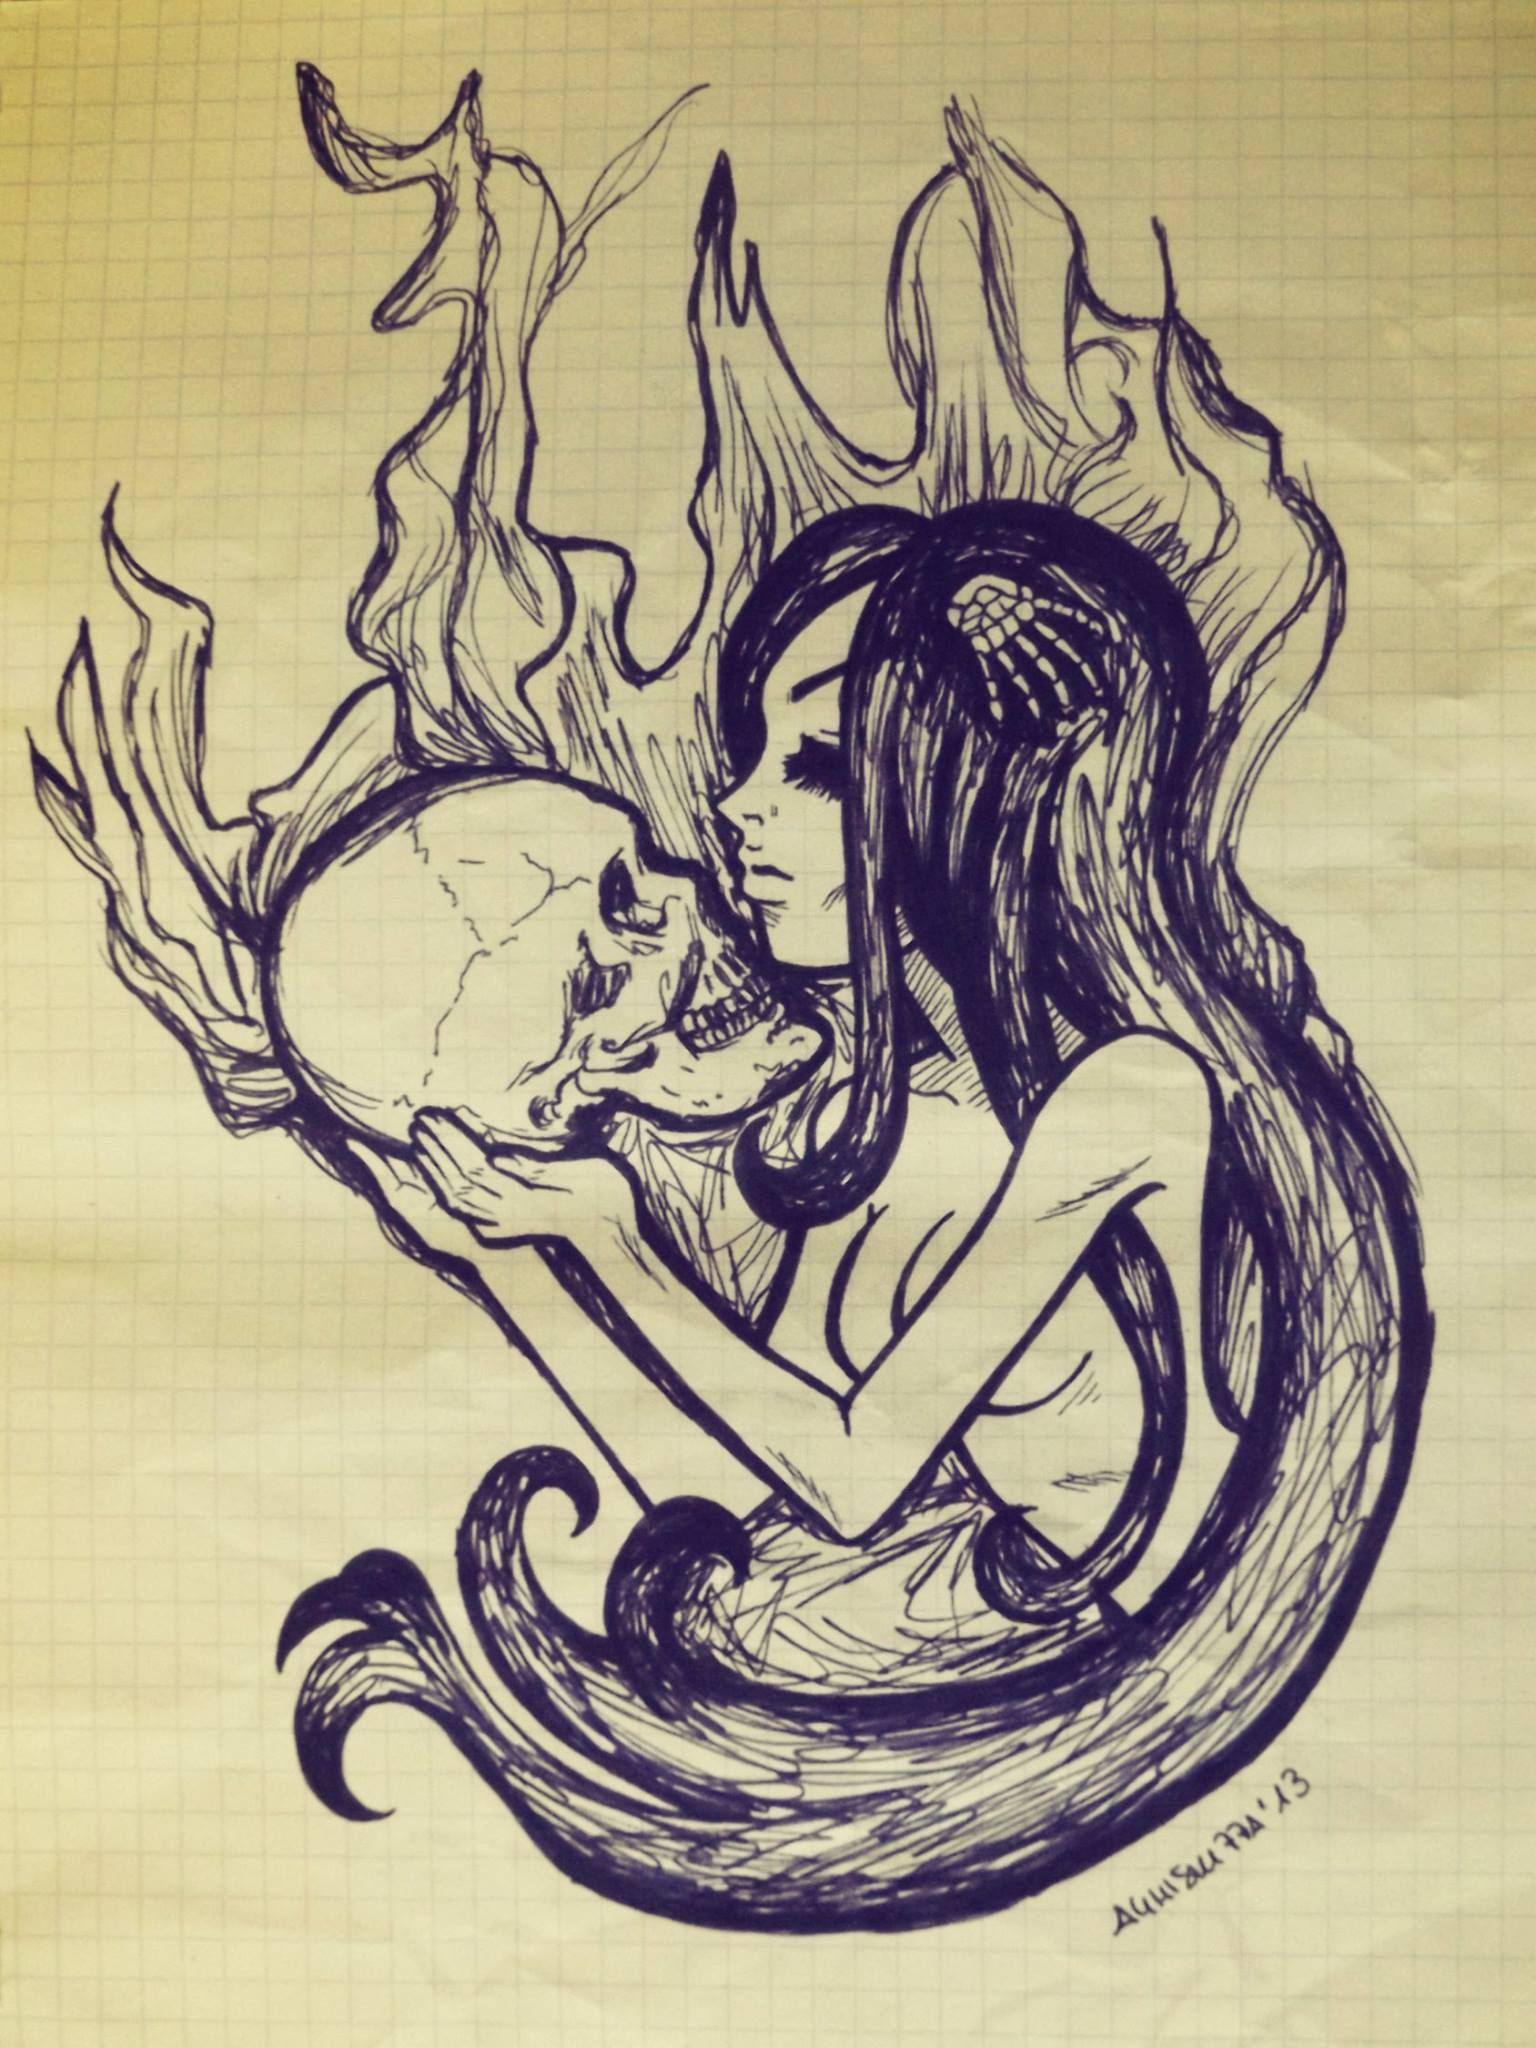 Romantic sketches sketch drawing pen pendrawing girl nude girls body longhair skull fastdrawing fire romance